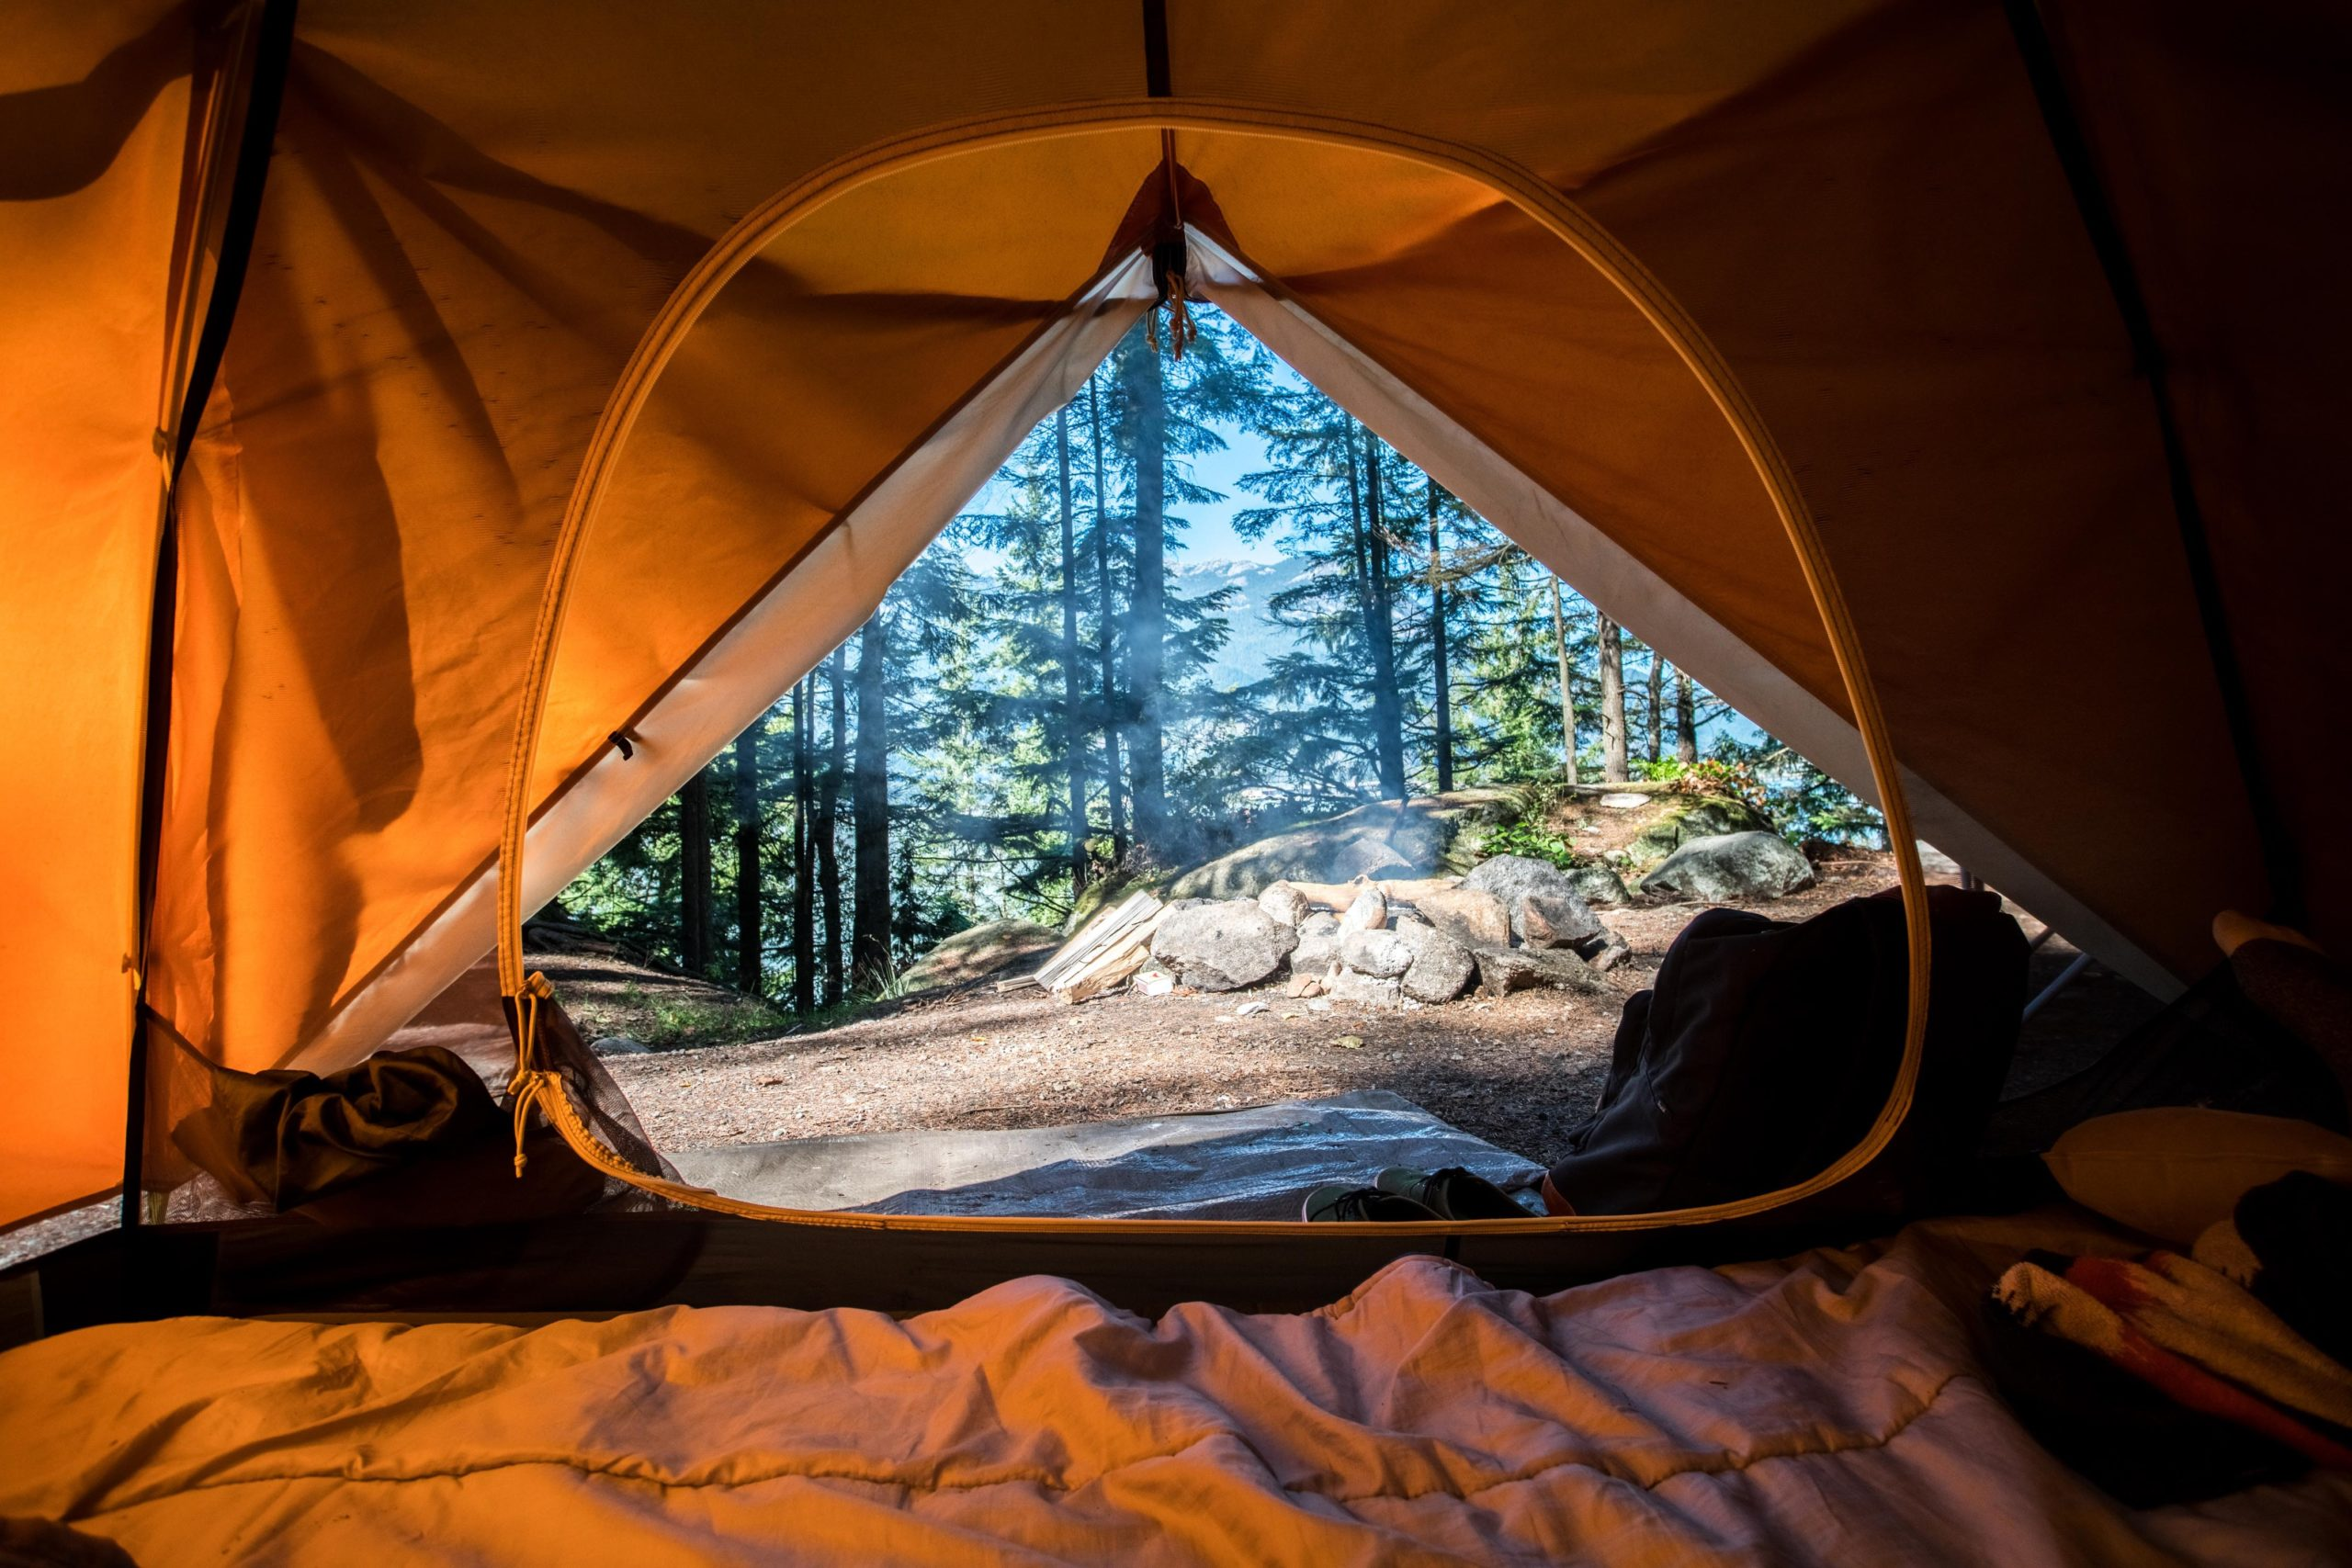 Camping Checklist: Know The Basics Before You Head Out